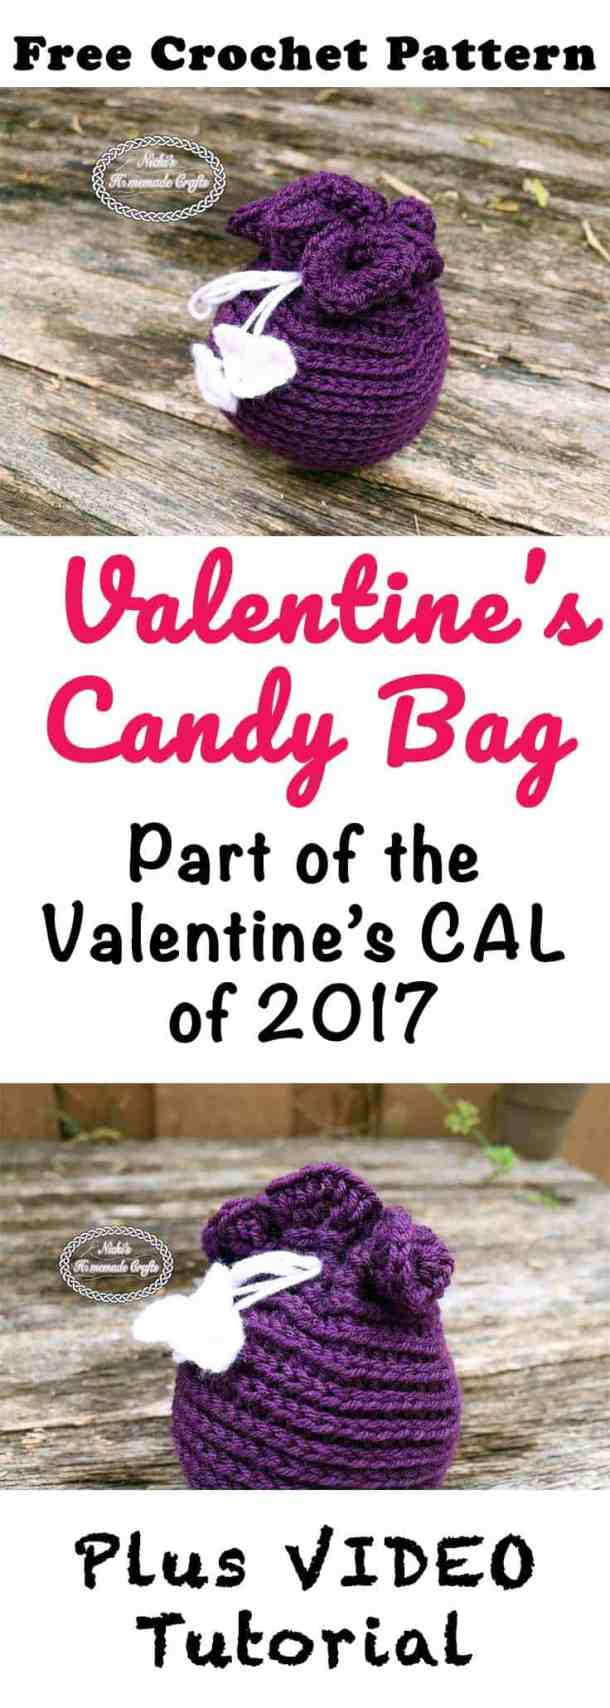 Valentine's Candy Bag - Free Crochet pattern by Nicki's Homemade Crafts #crochet #freecrochetpattern #valentinesday #candybag